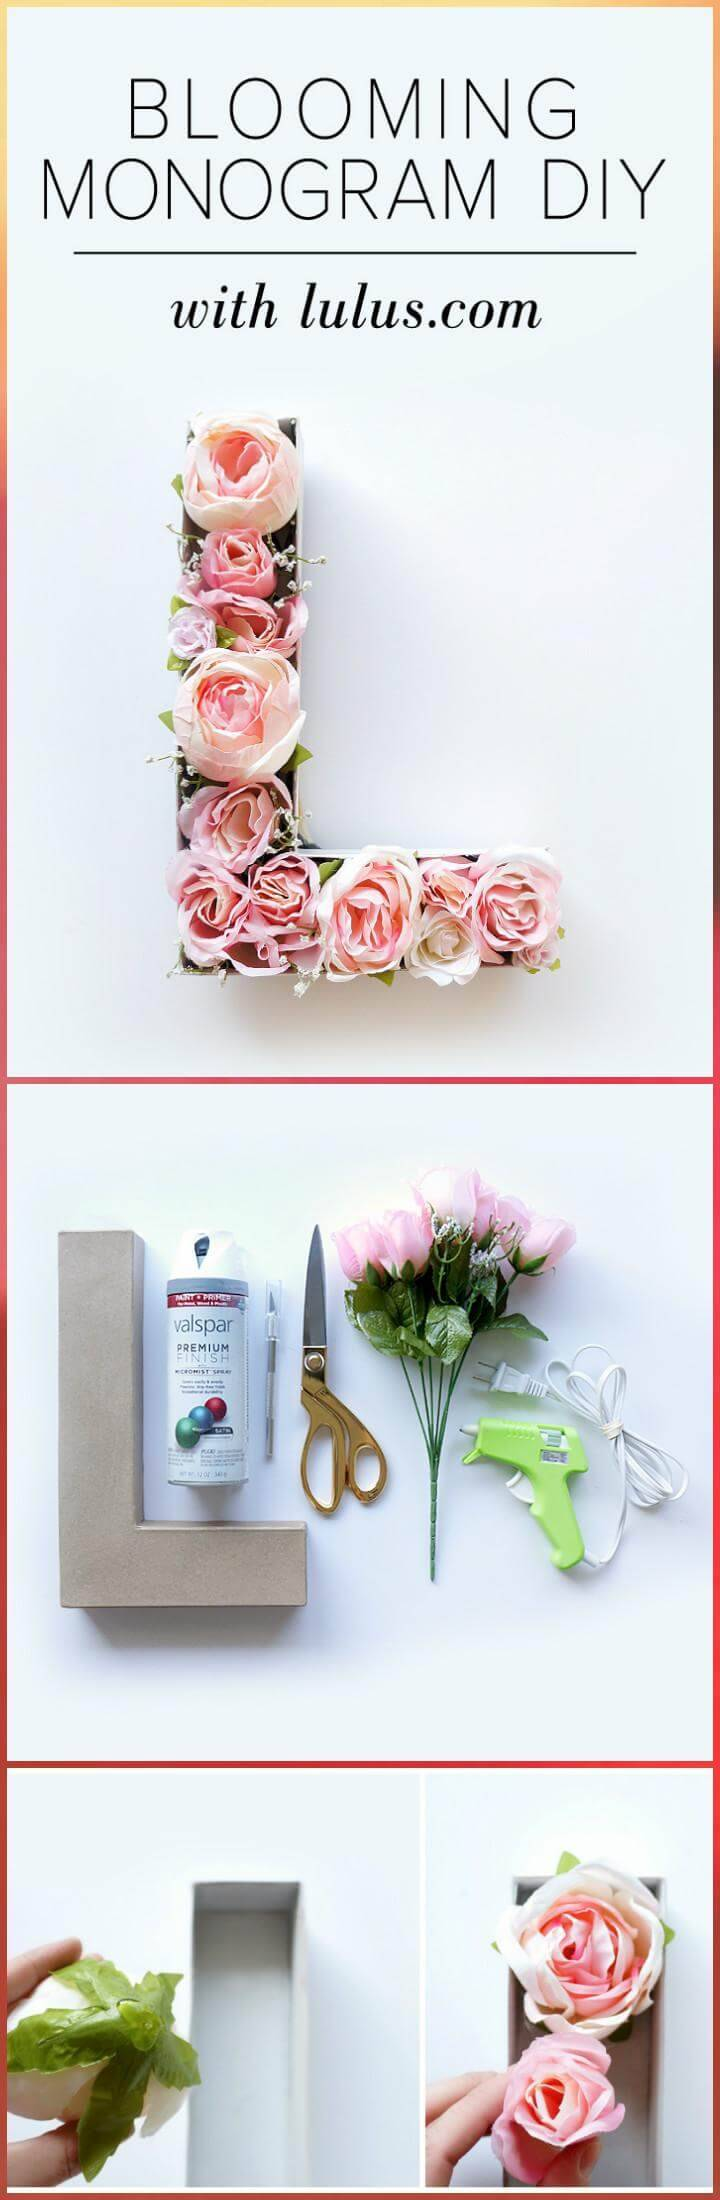 DIY blooming monogram Mother's Day gift